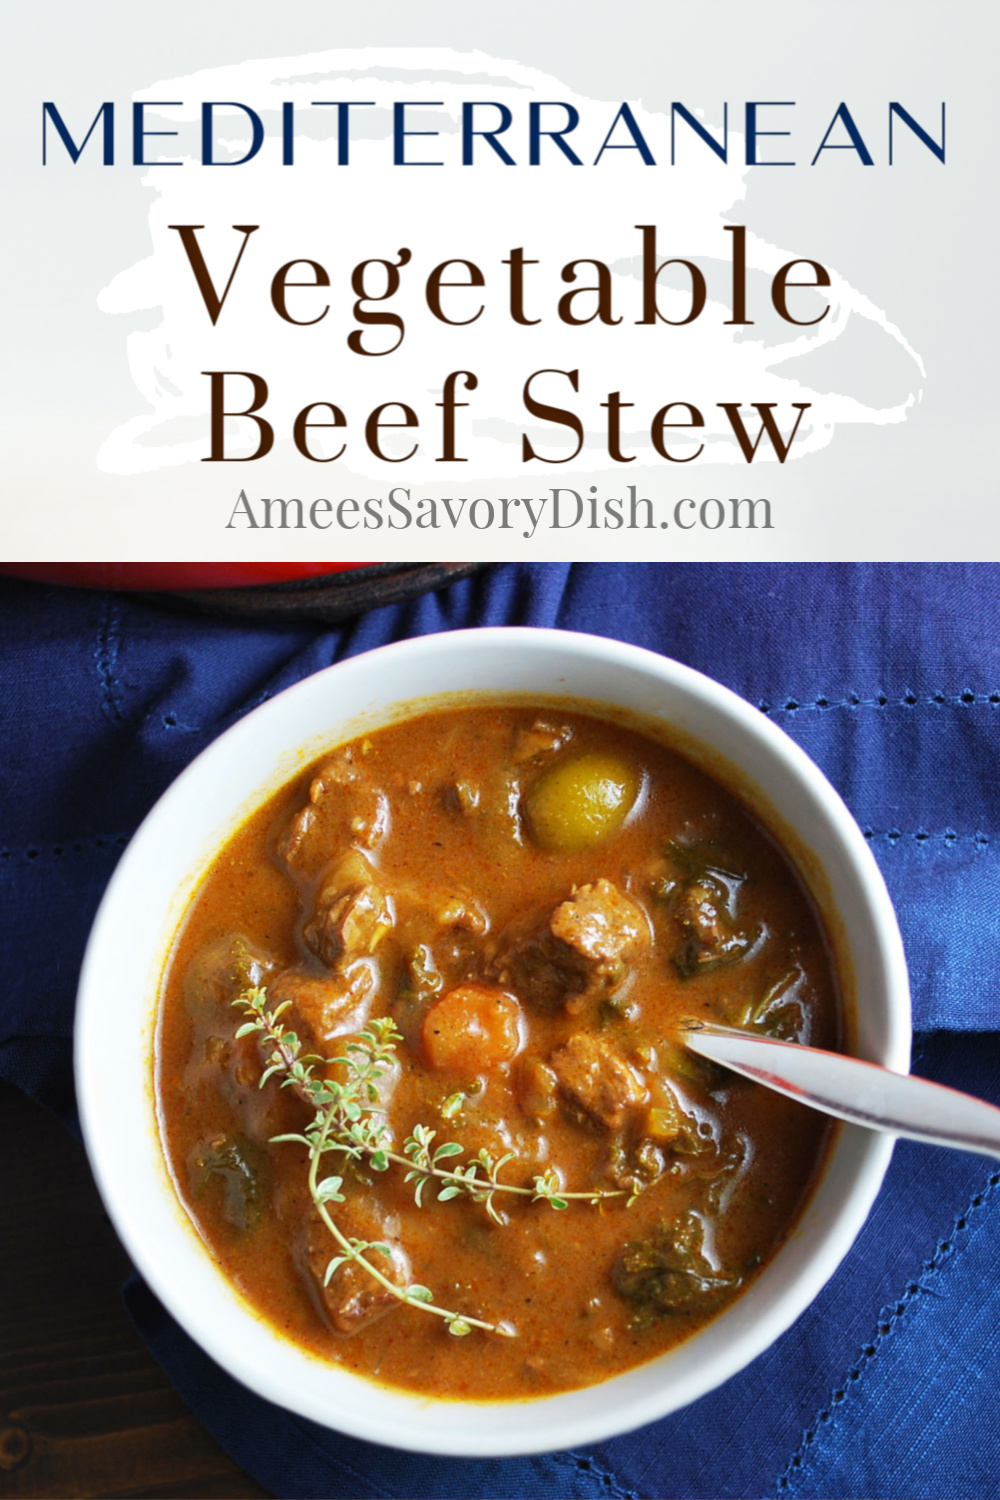 #Sponsored A Mediterranean-inspired recipe for a vegetable beef stew made with lean Beef Bottom Round Roast, beef broth, red wine, vegetables, olives, and fresh herbs.  This low-carb stew recipe is hearty and delicious!  via @Ameessavorydish